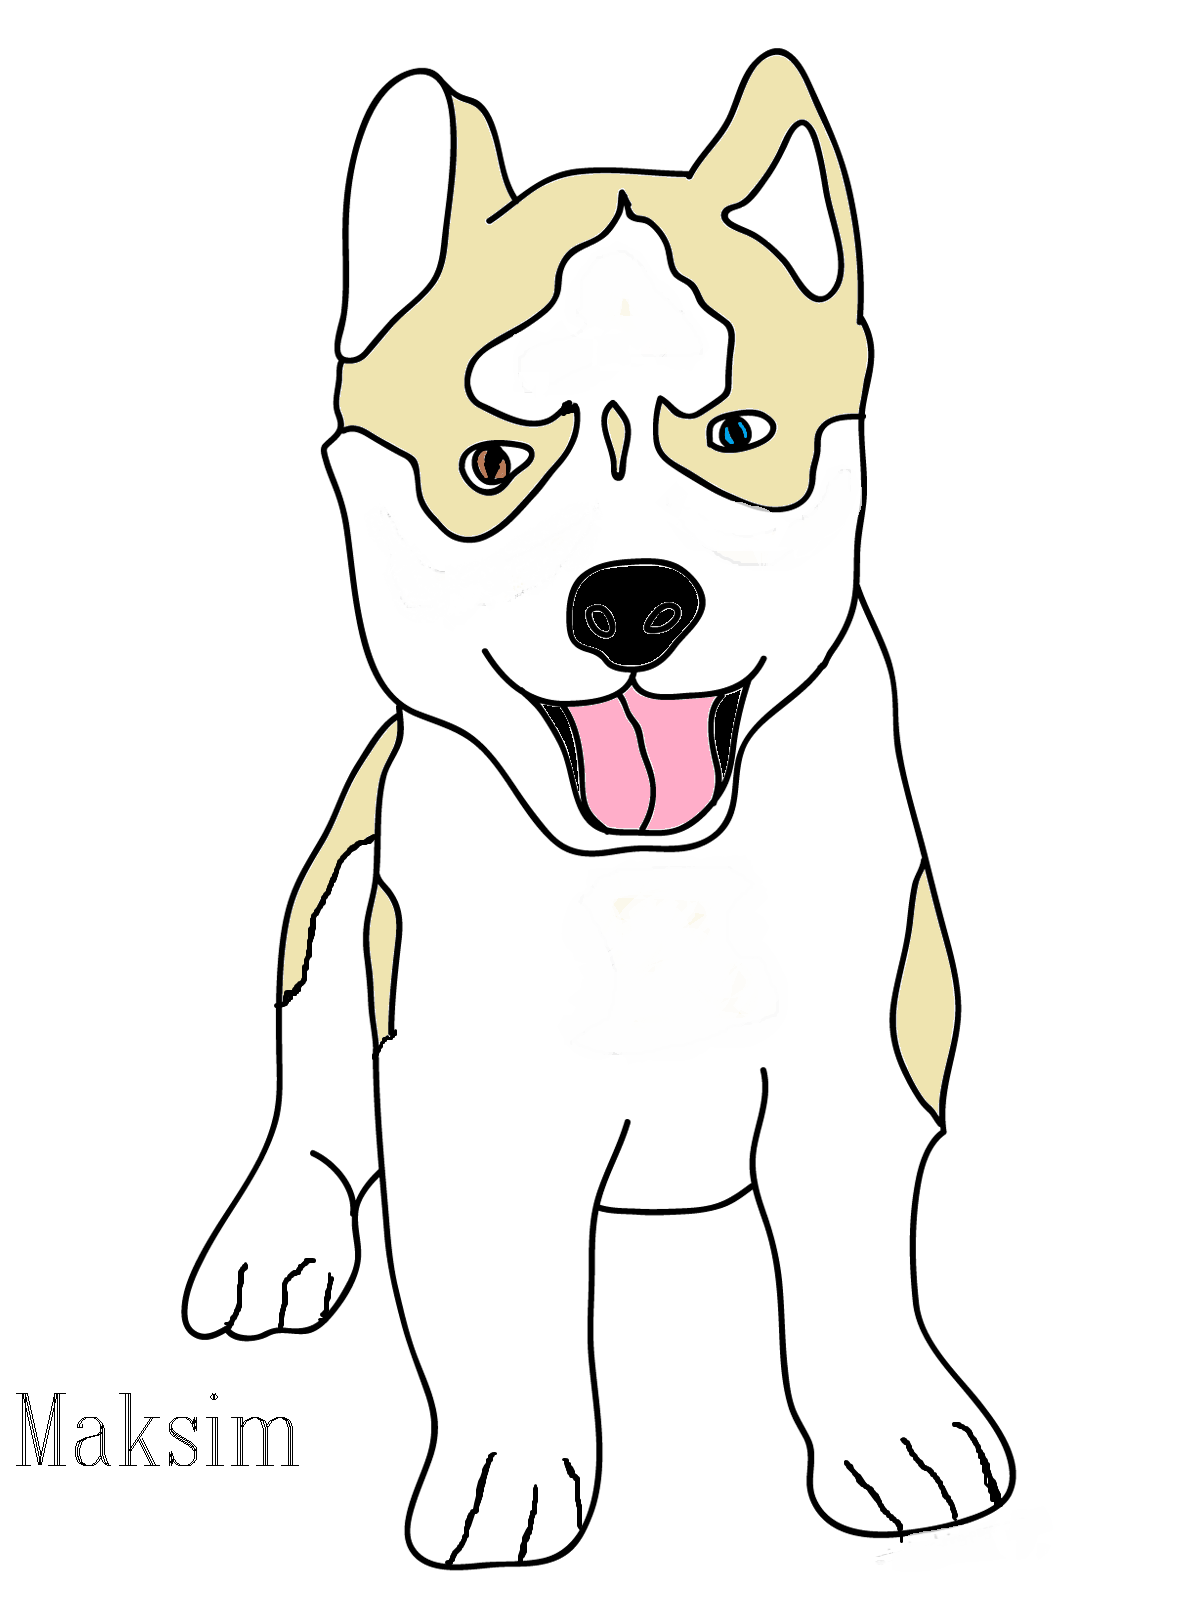 Husky Puppy Drawing at GetDrawings.com | Free for personal use Husky ...